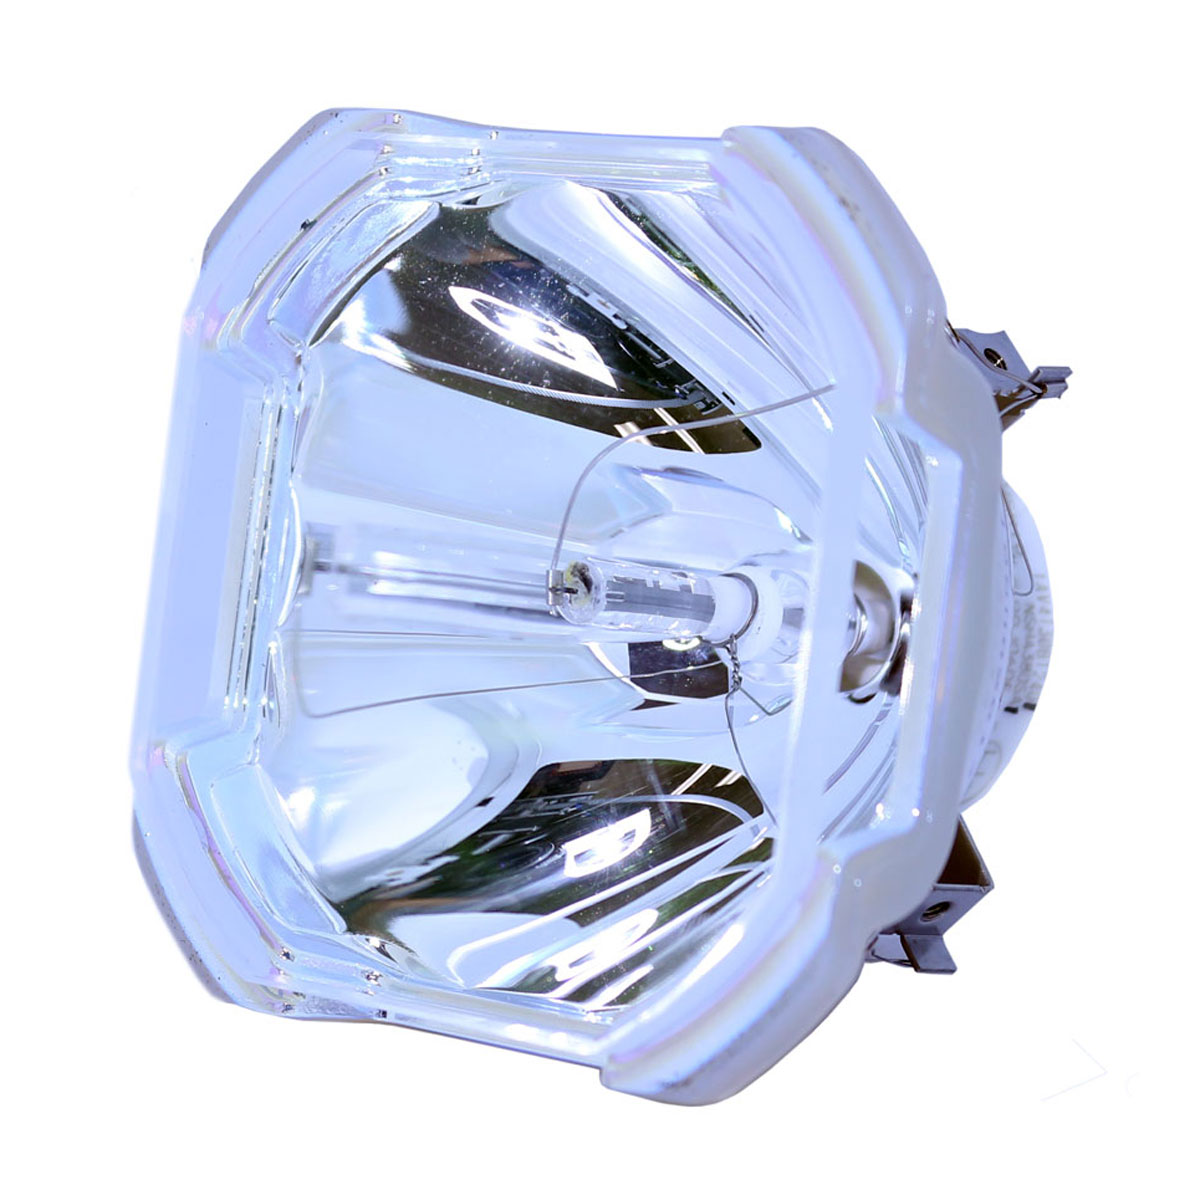 Compatible Bare Bulb POA-LMP149 LMP149 610-357-0464 for SANYO PLC-HP7000L Projector Bulb Lamp Without Housing Free Shipping  compatible bare bulb poa lmp57 lmp57 610 308 3117 for sanyo plc sw30 plc sw35 projector lamp bulb without housing free shipping